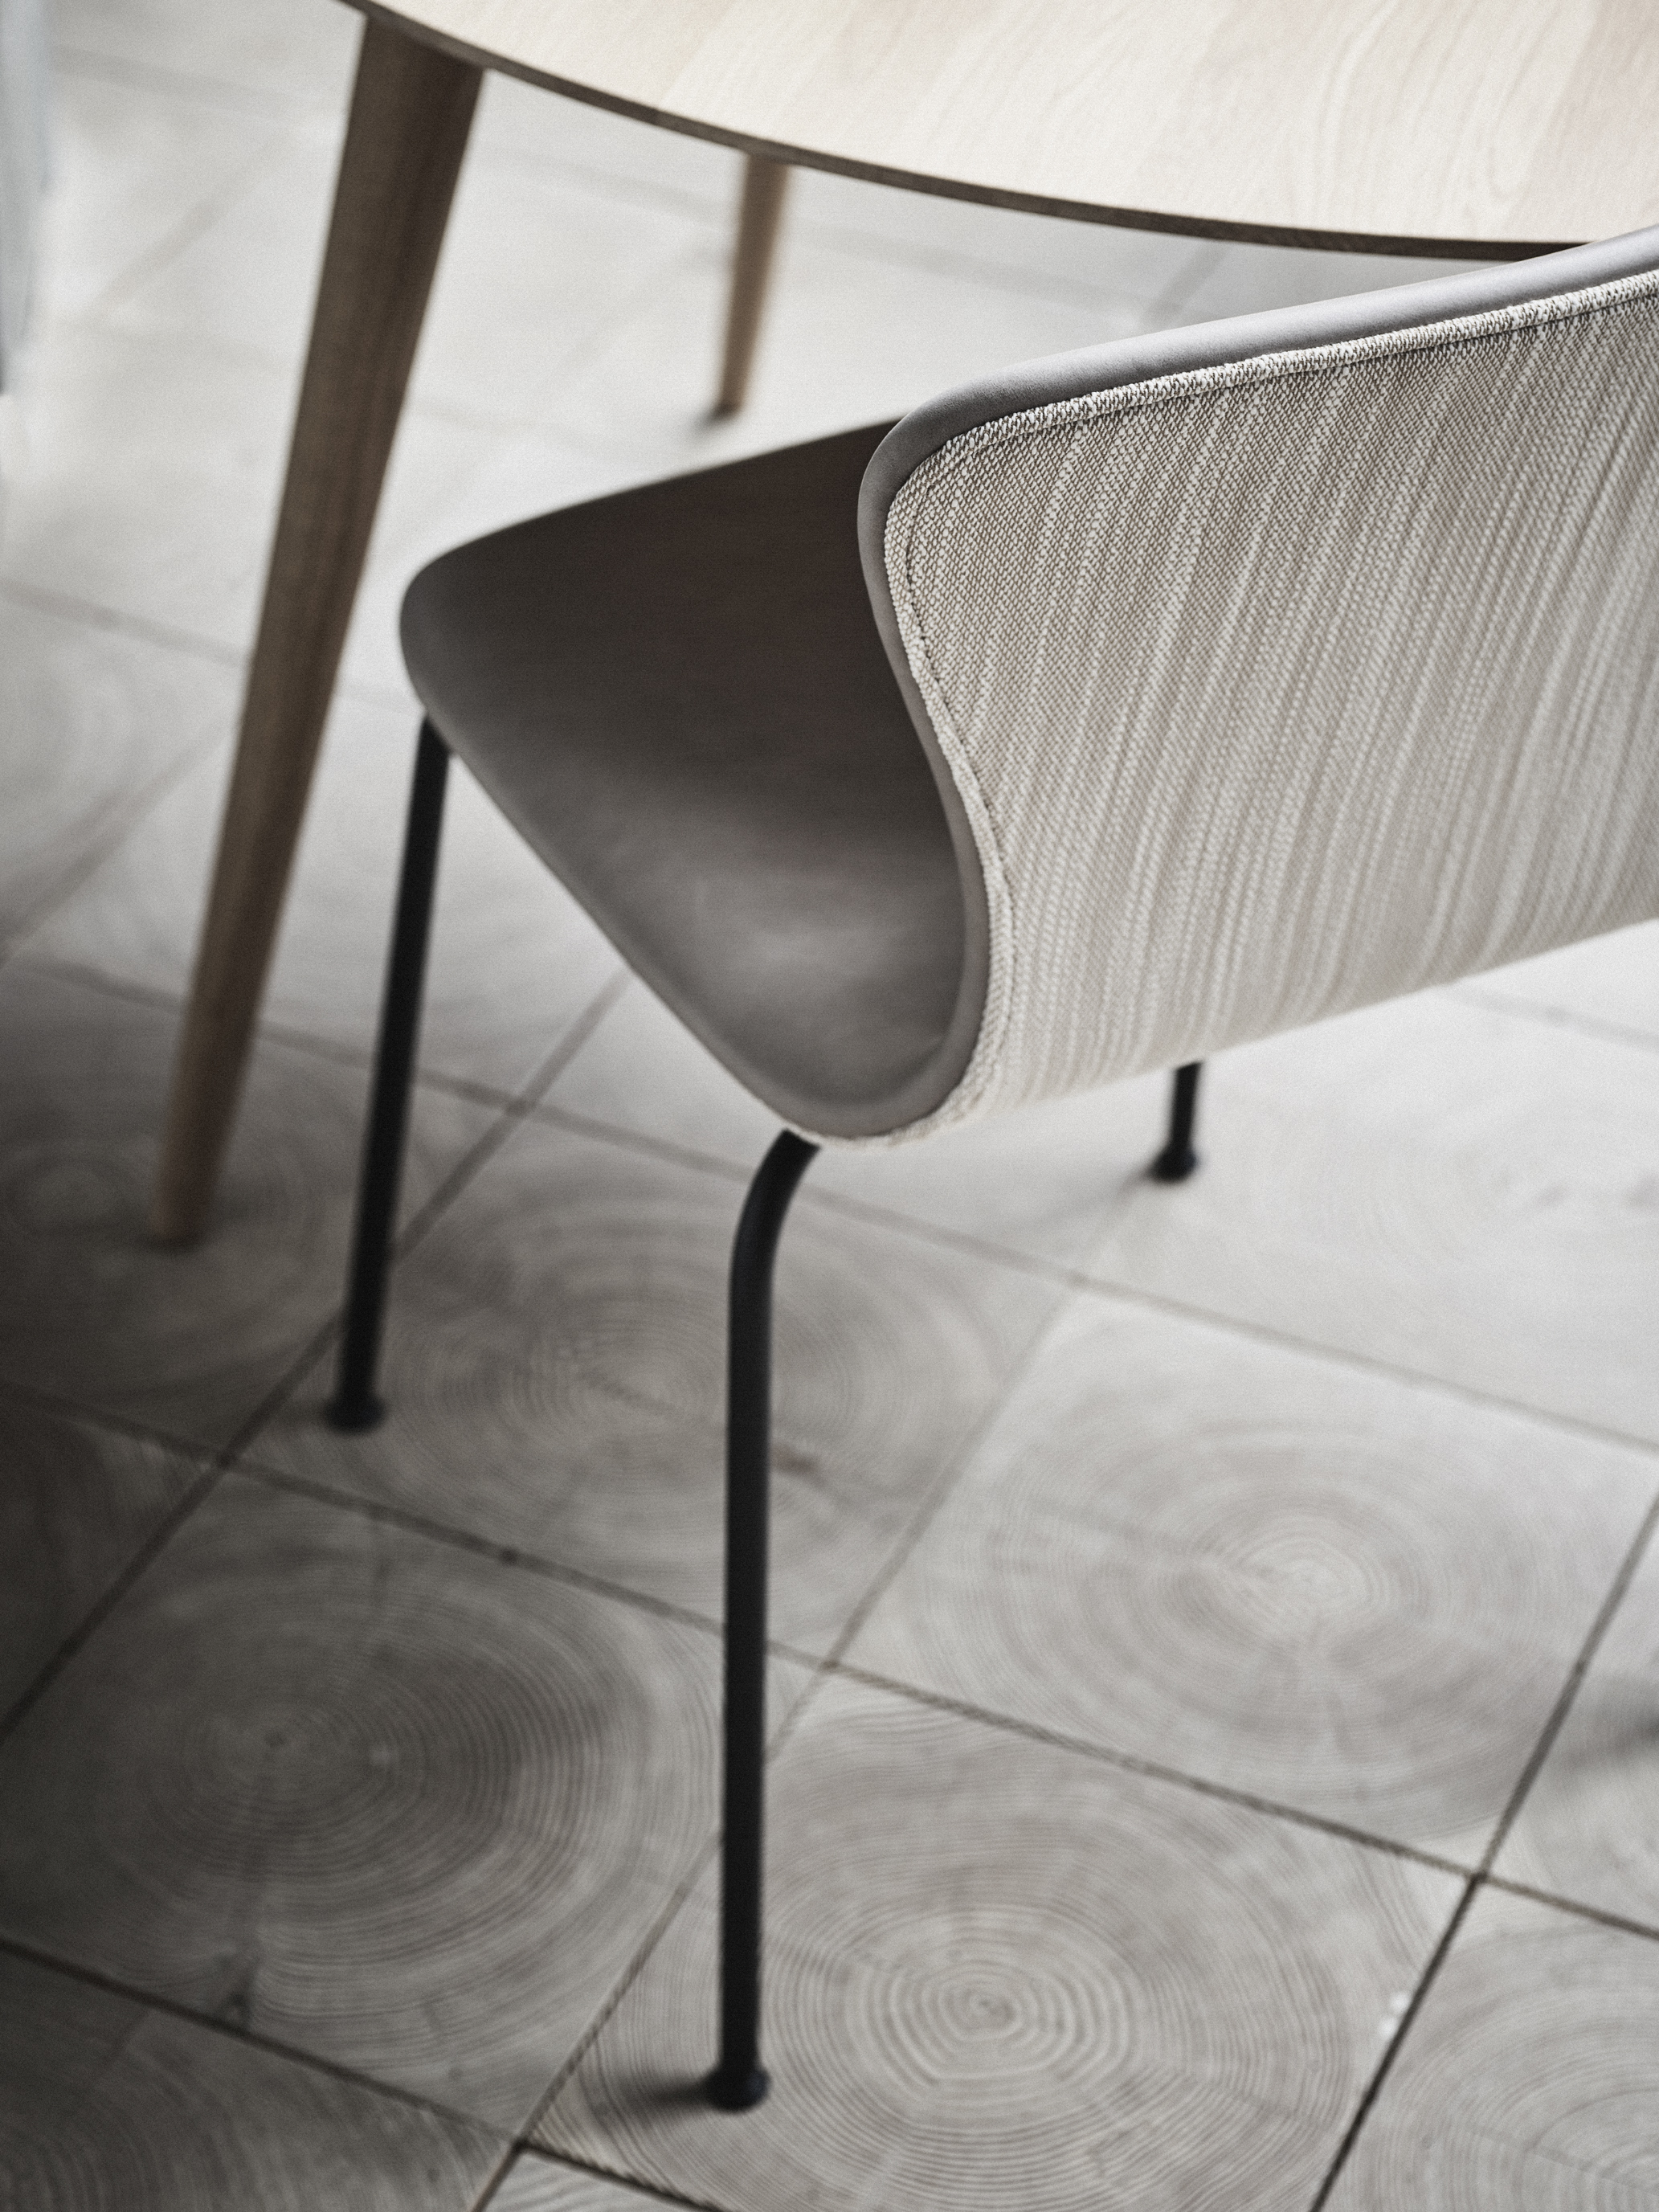 Nuance  Burned Grey Leather from Sorensen Leather by Space Copenhagen &  Lila  from Kvadrat by Doshi Levien